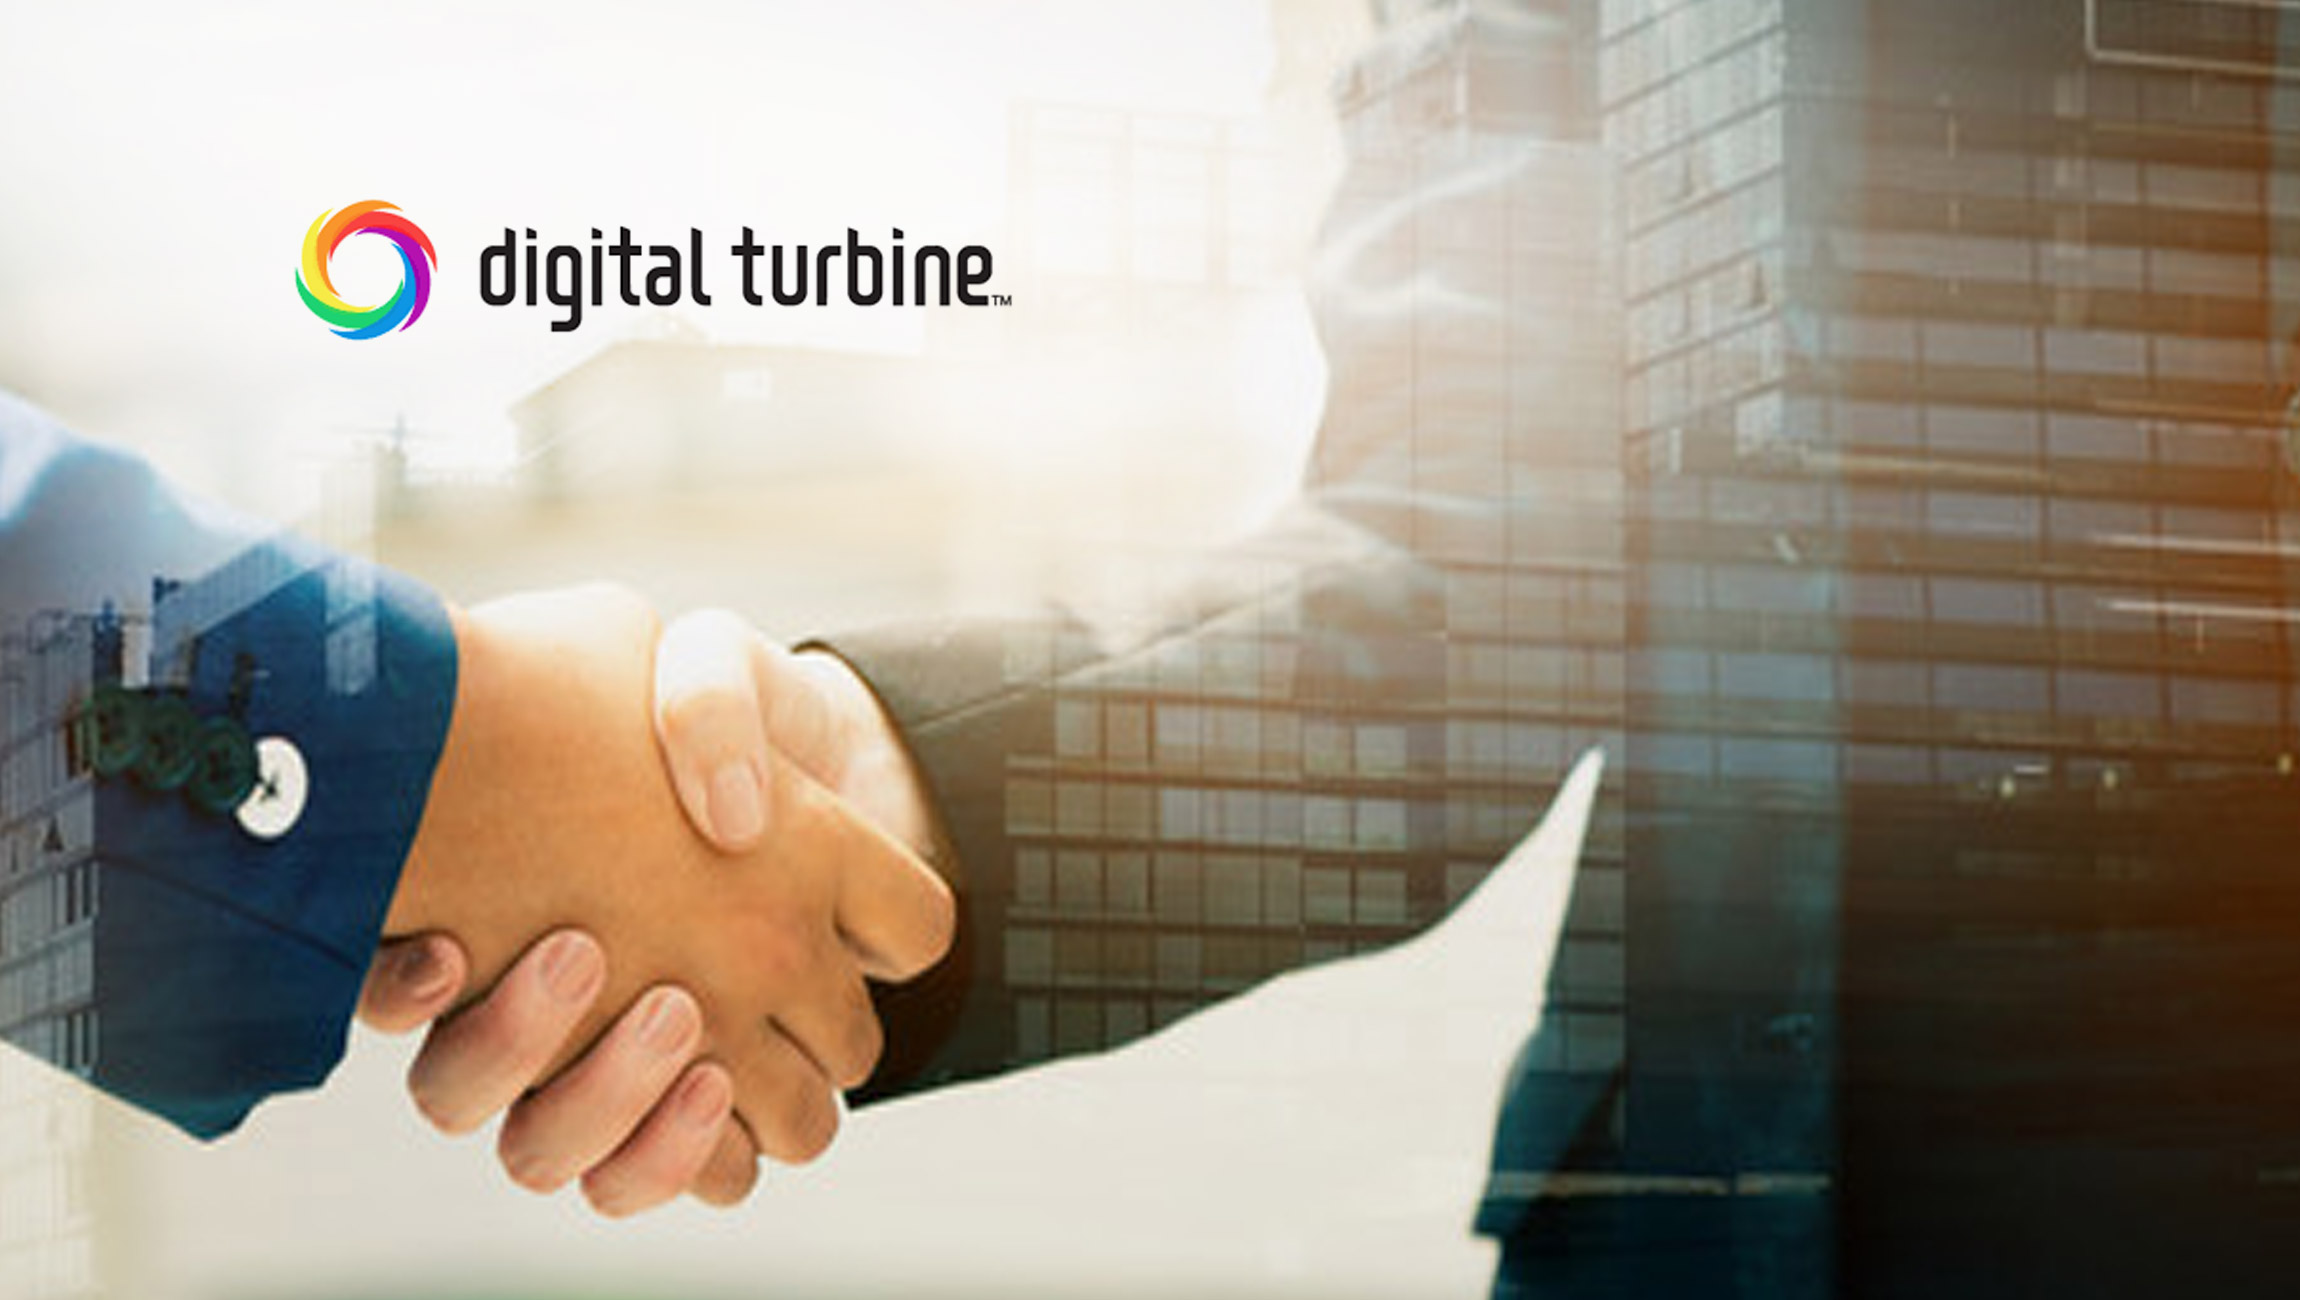 Digital Turbine Announces Acquisition of Triapodi, a Programmatic DSP